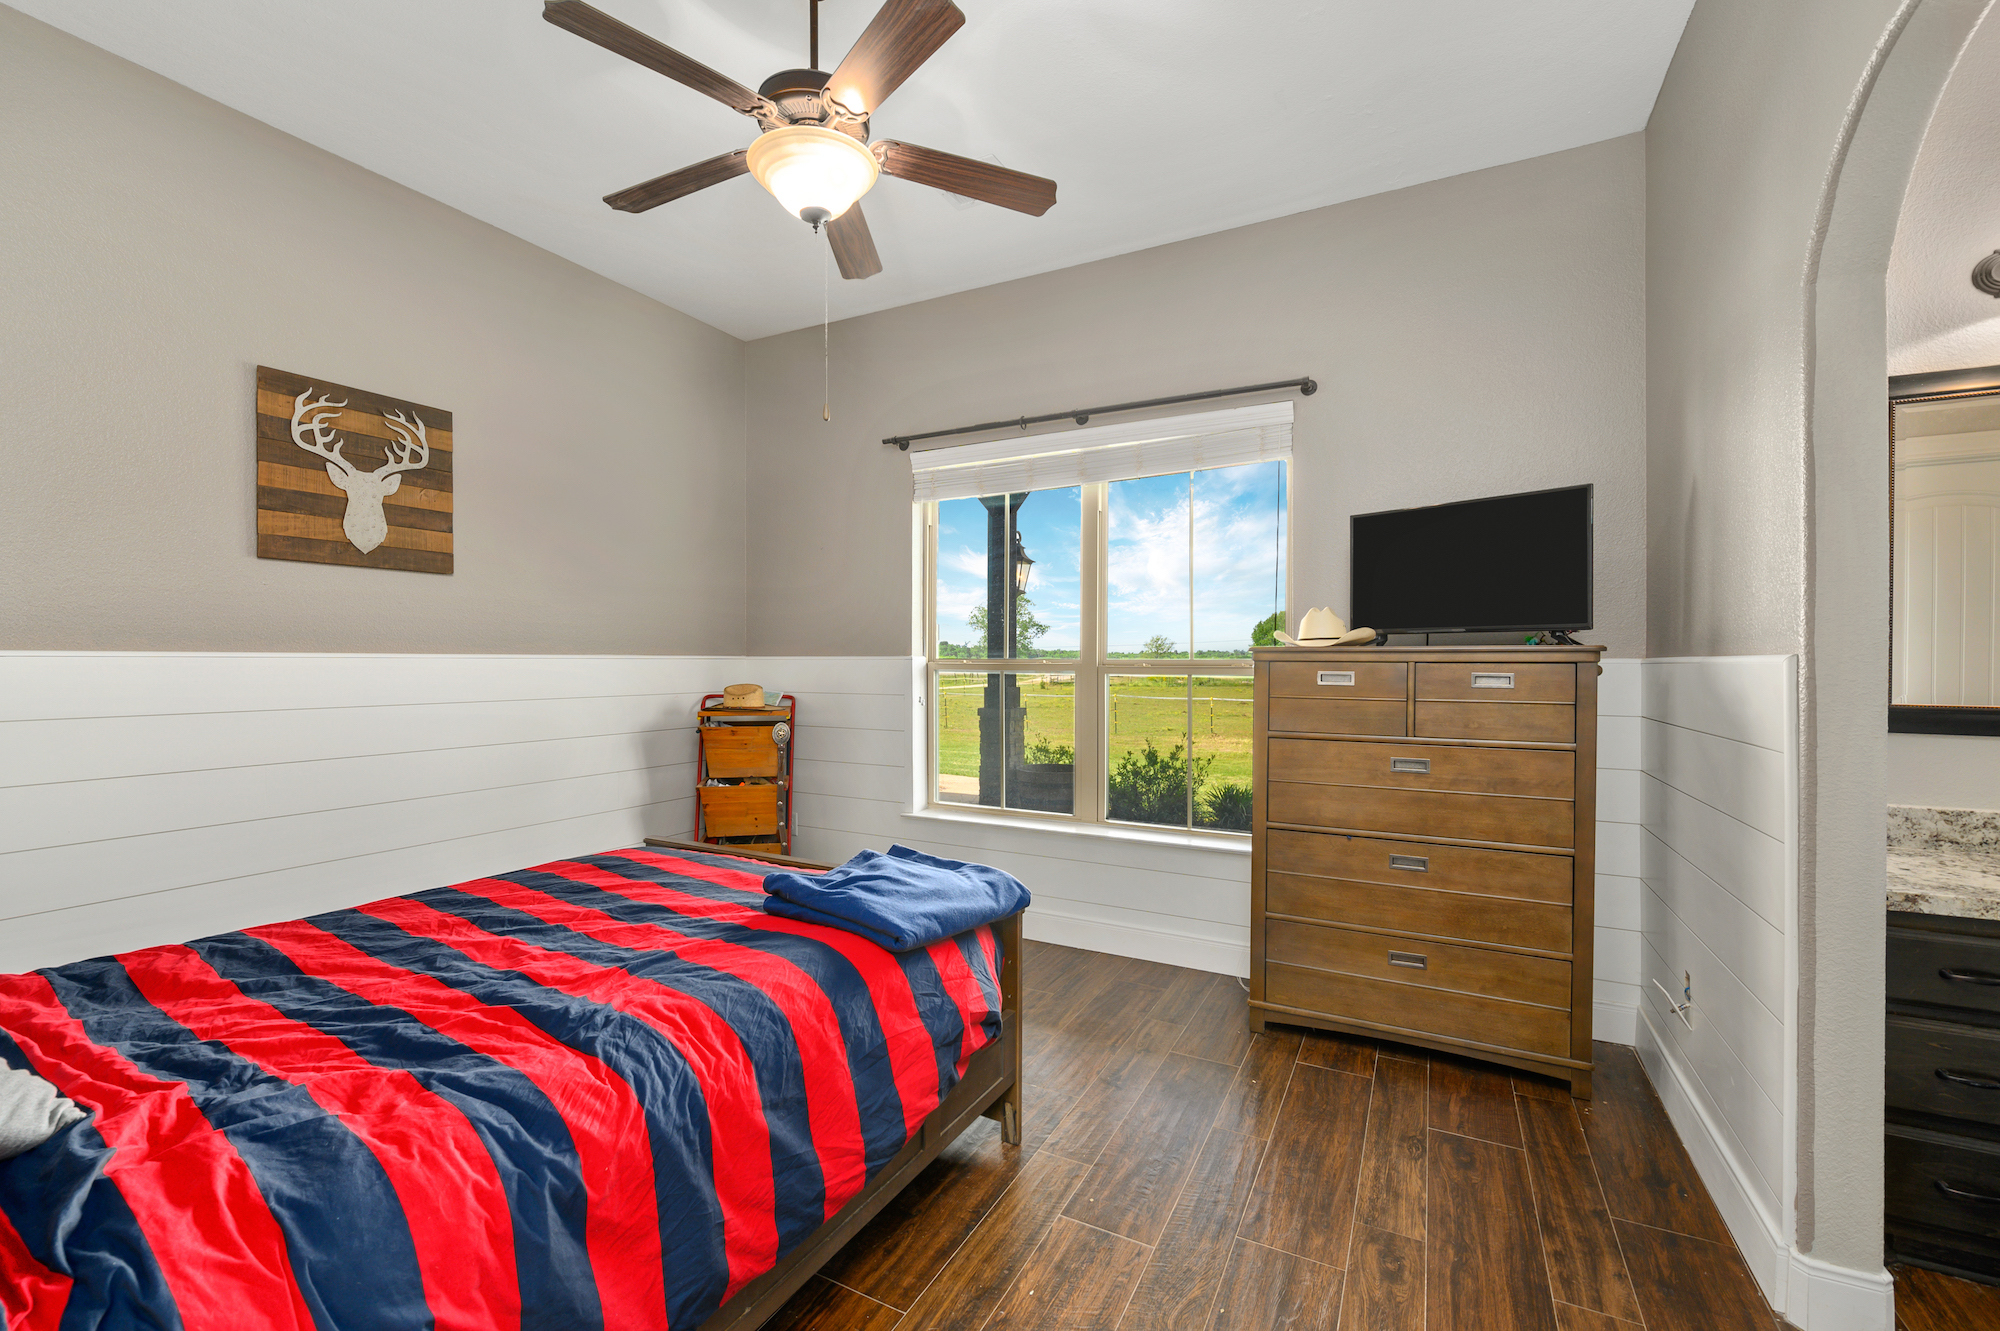 Custom Country Home with Acreage in Sealy - Image 14 of 46